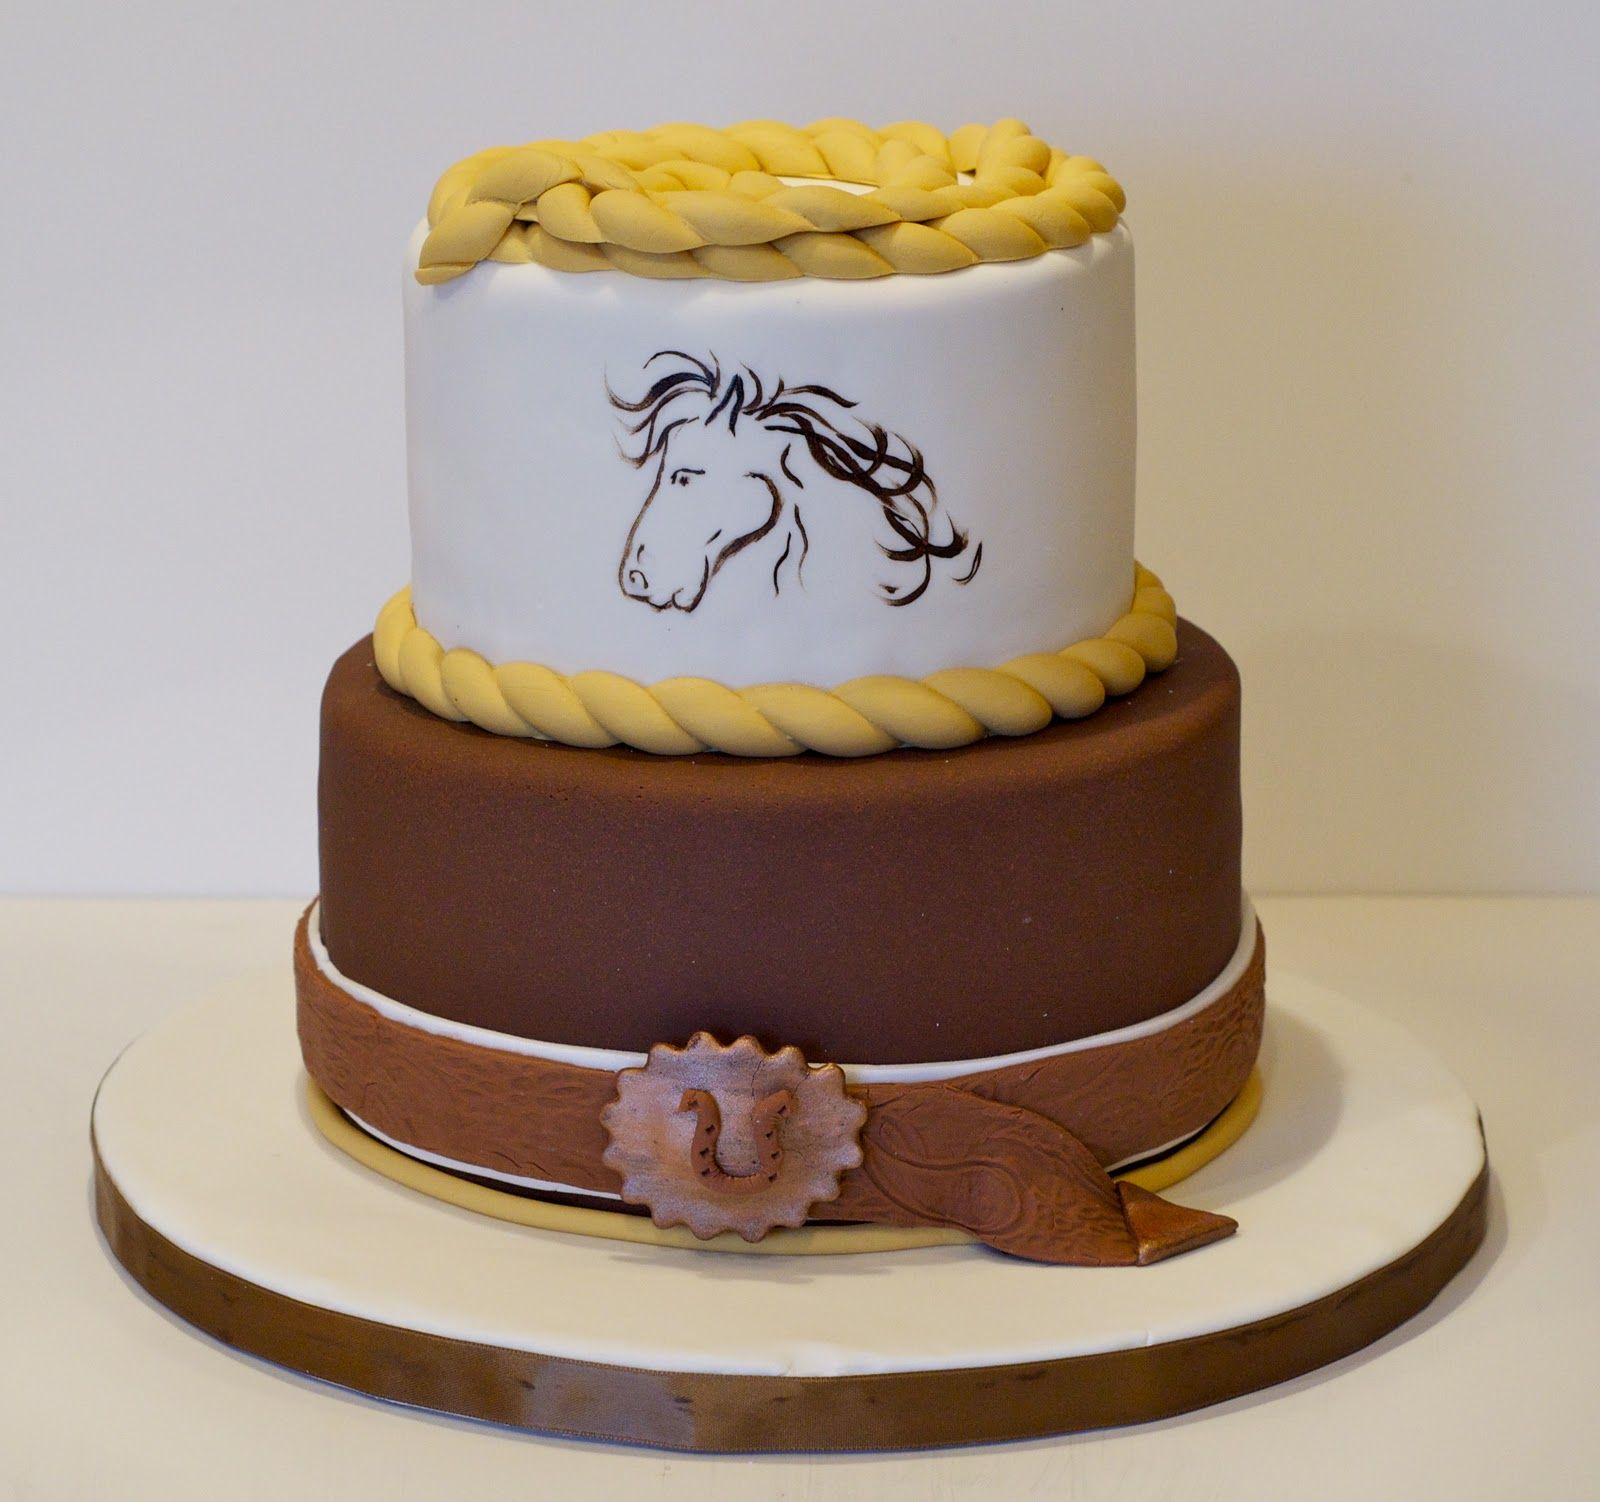 Cowboy Themed Cake Themed Party Cakes Pinterest Cake And Mini